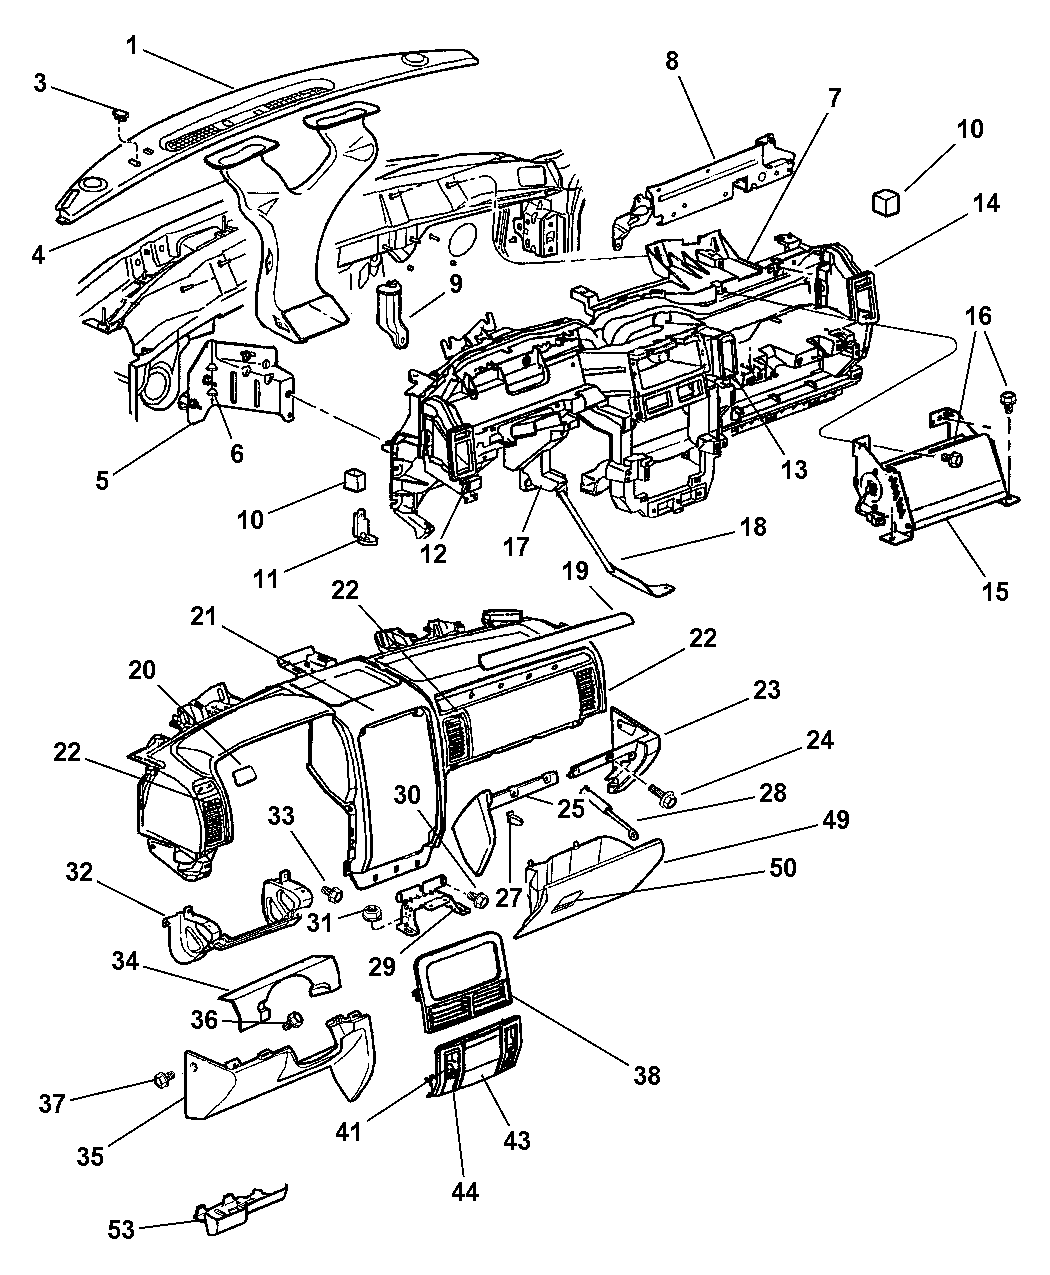 2002 Jeep Grand Cherokee Parts Diagram